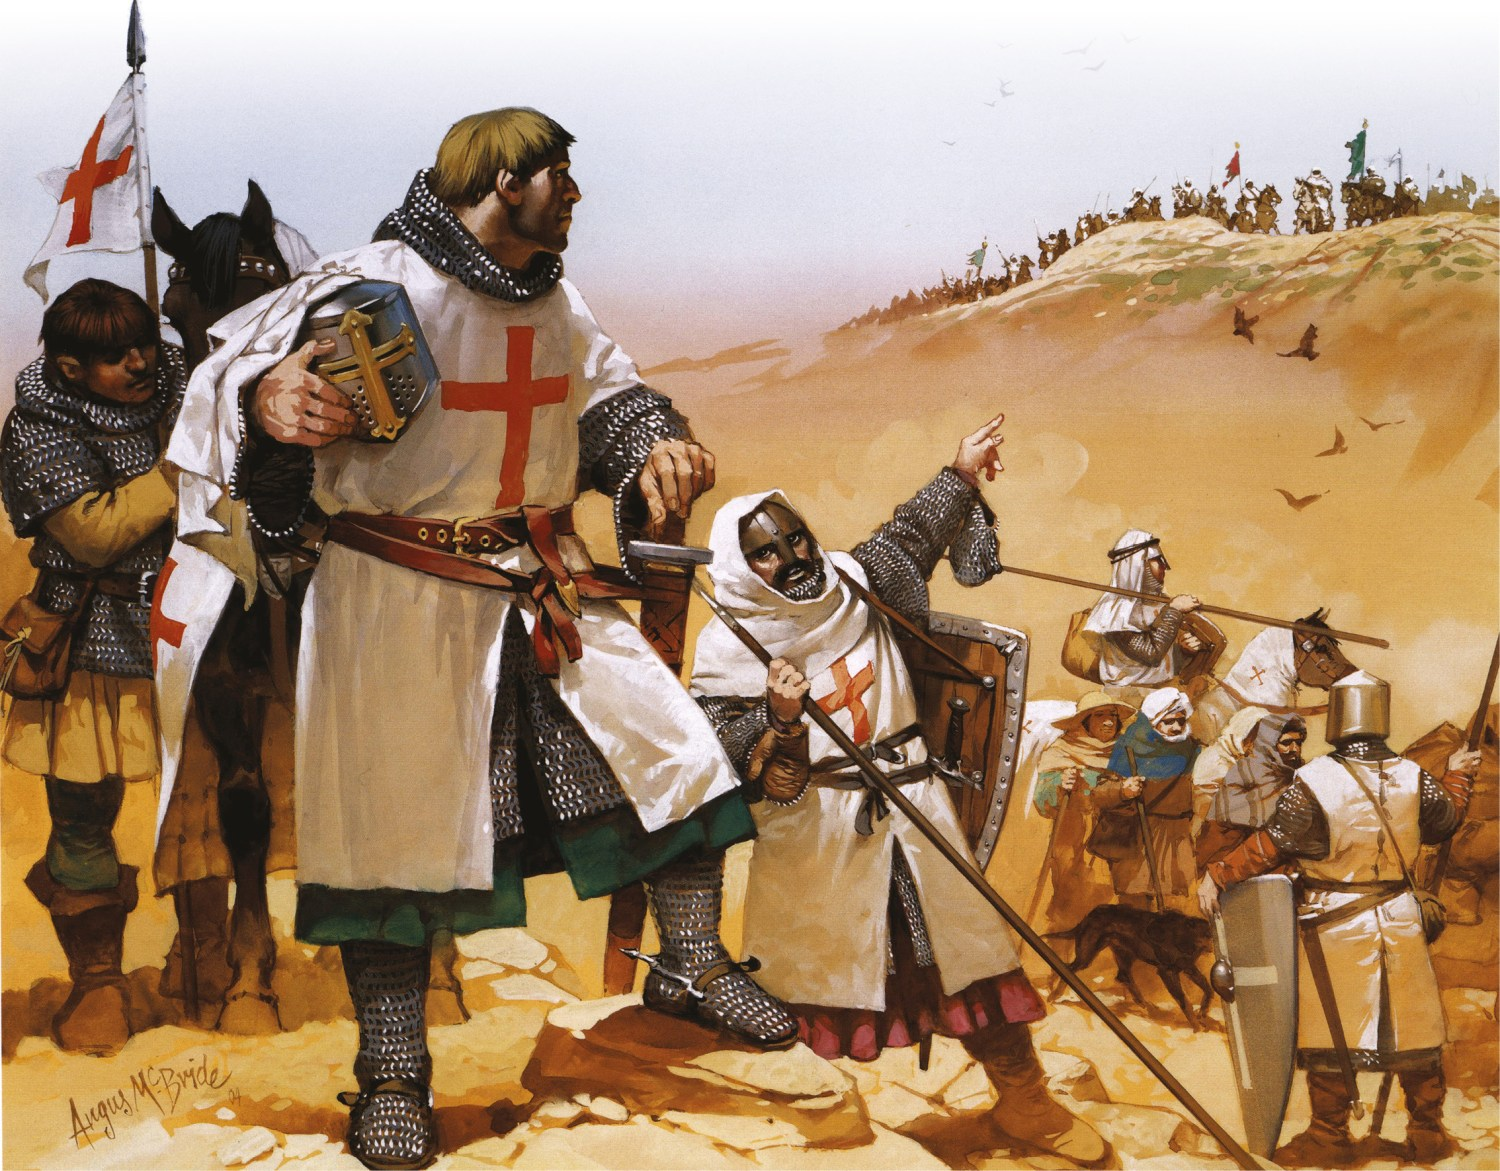 OPPOSITE Knights Templar in the Holy Land. Feudal blunderers or calculating strategists?